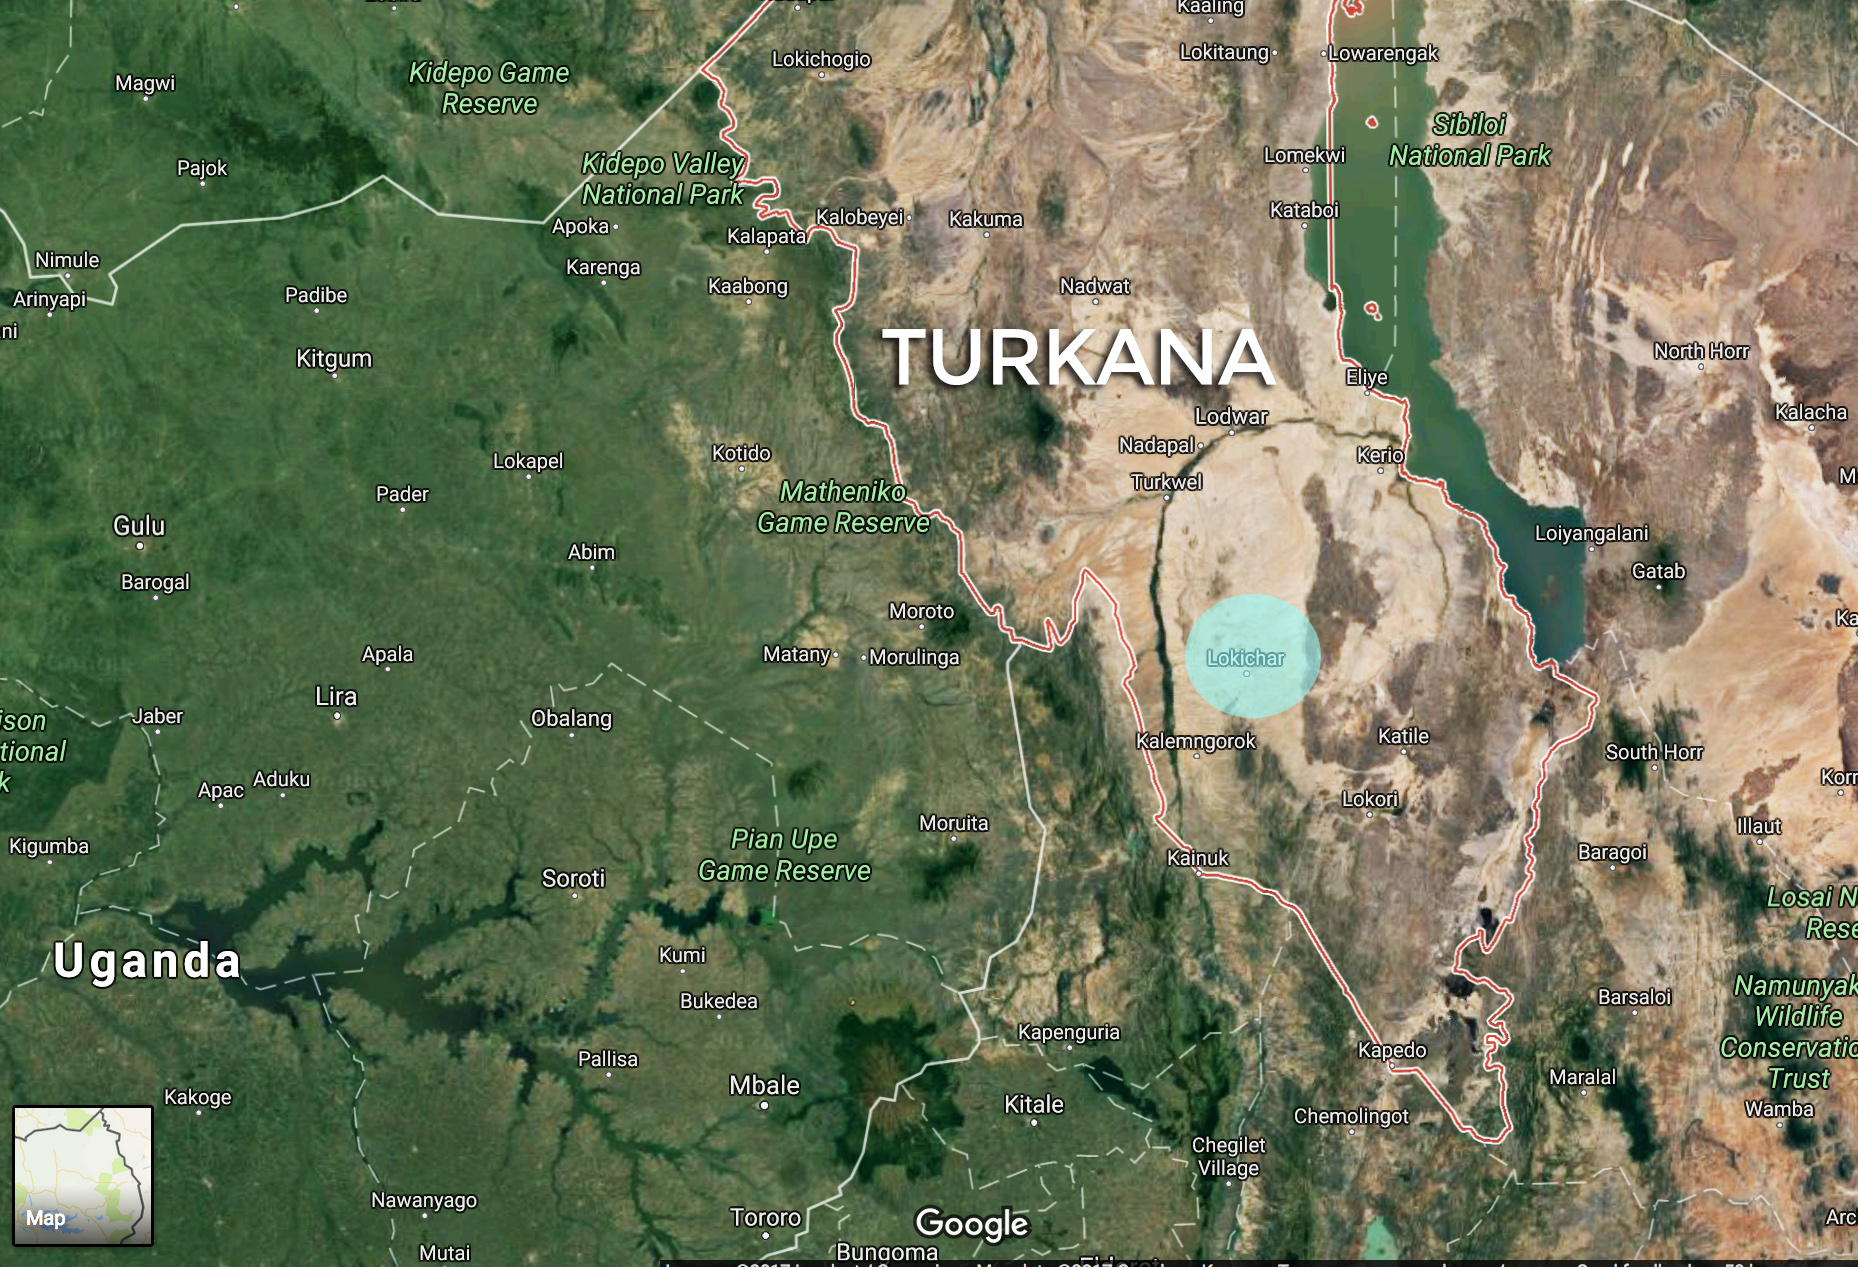 Turkana map.jpg